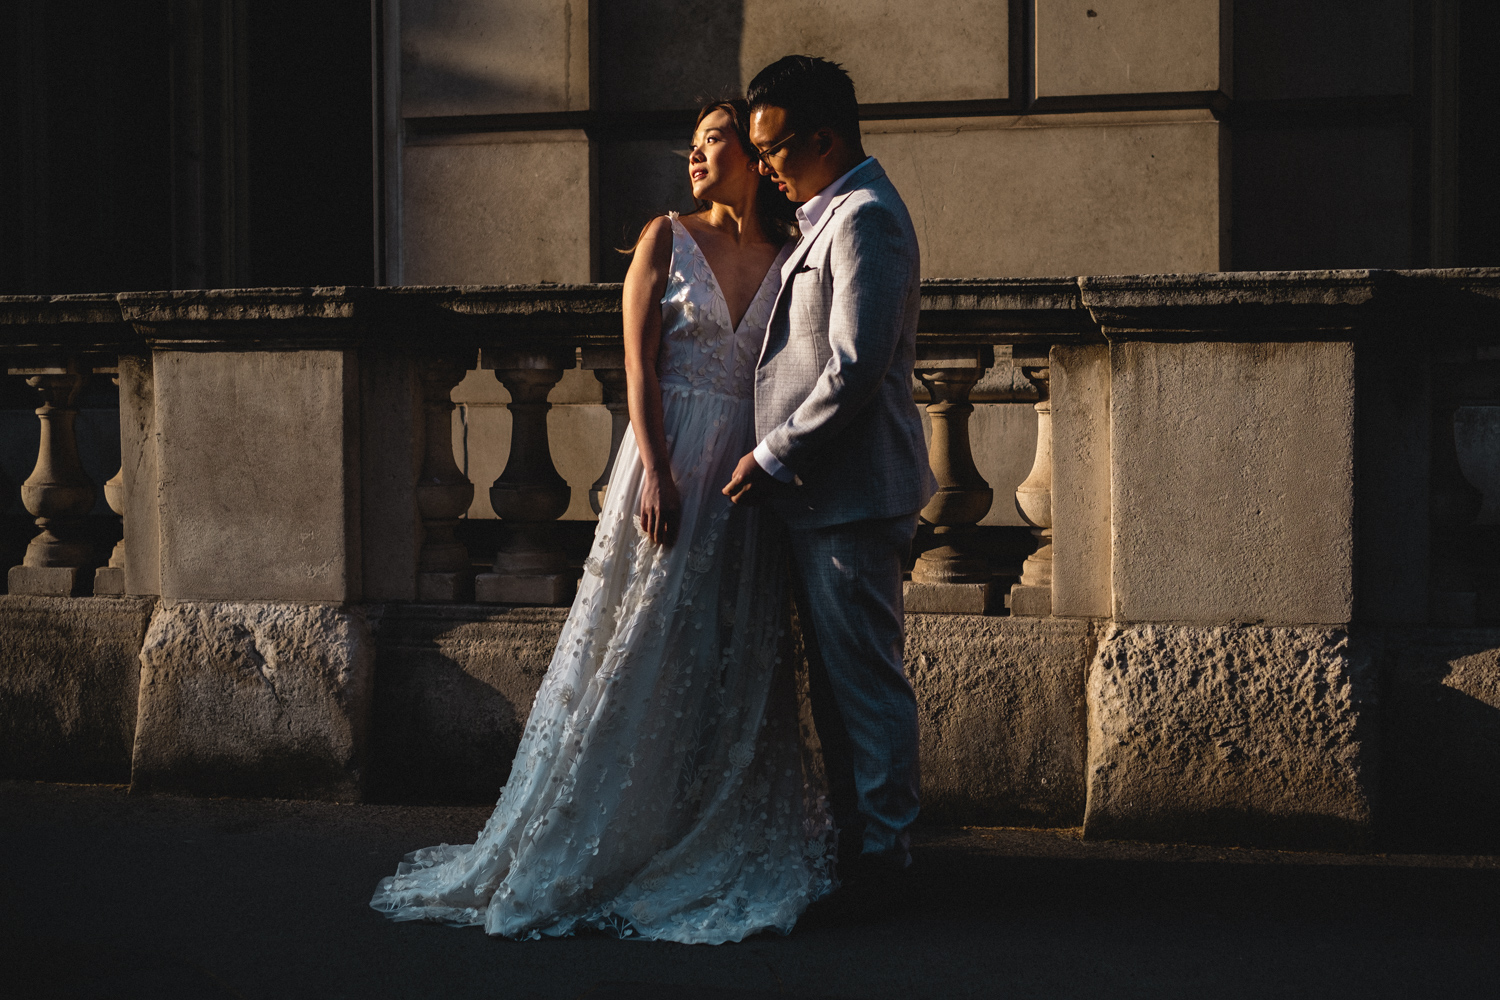 Copy of London pre-wedding photos - Horse Guards Avenue